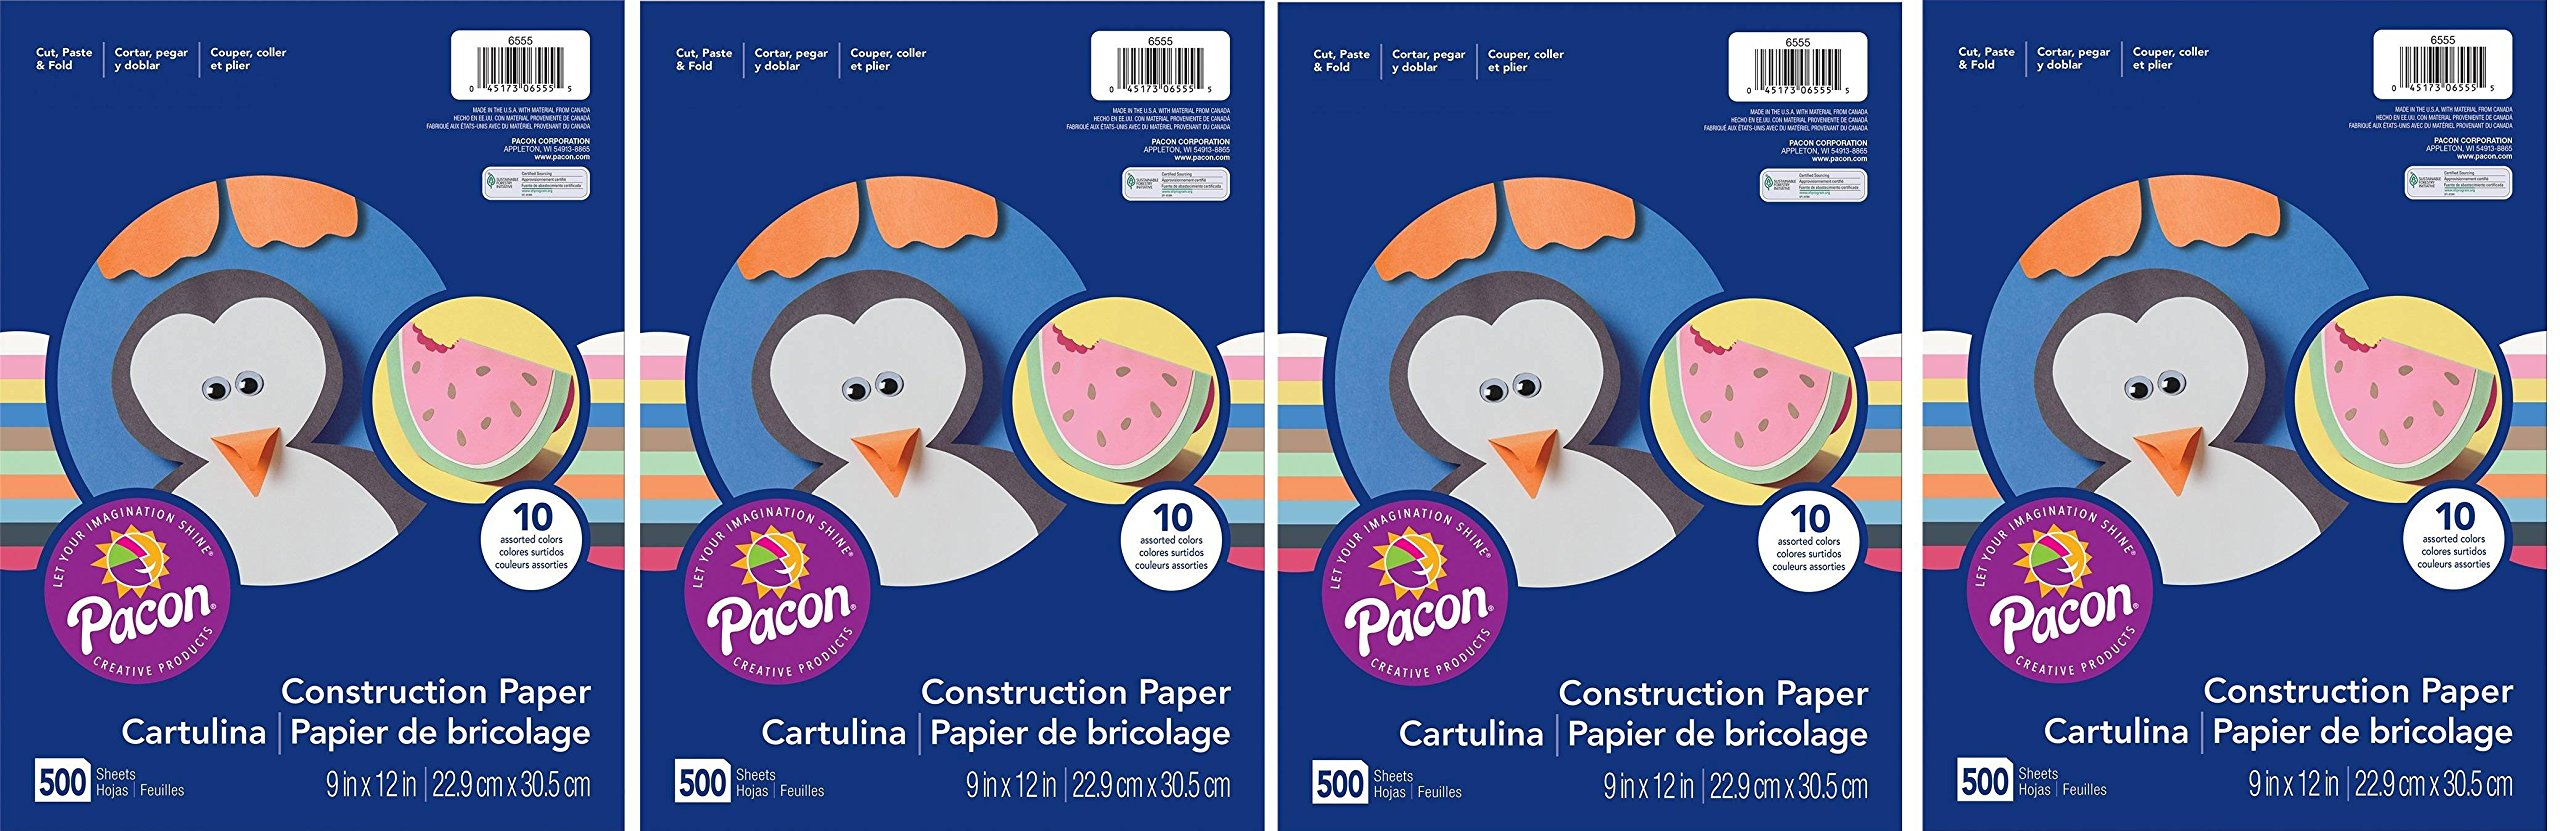 Pacon Lightweight cxNFSc Construction Paper, 9 Inches by 12 Inches, Assorted Colors, 500 Count (Pack of 4) by Pacon